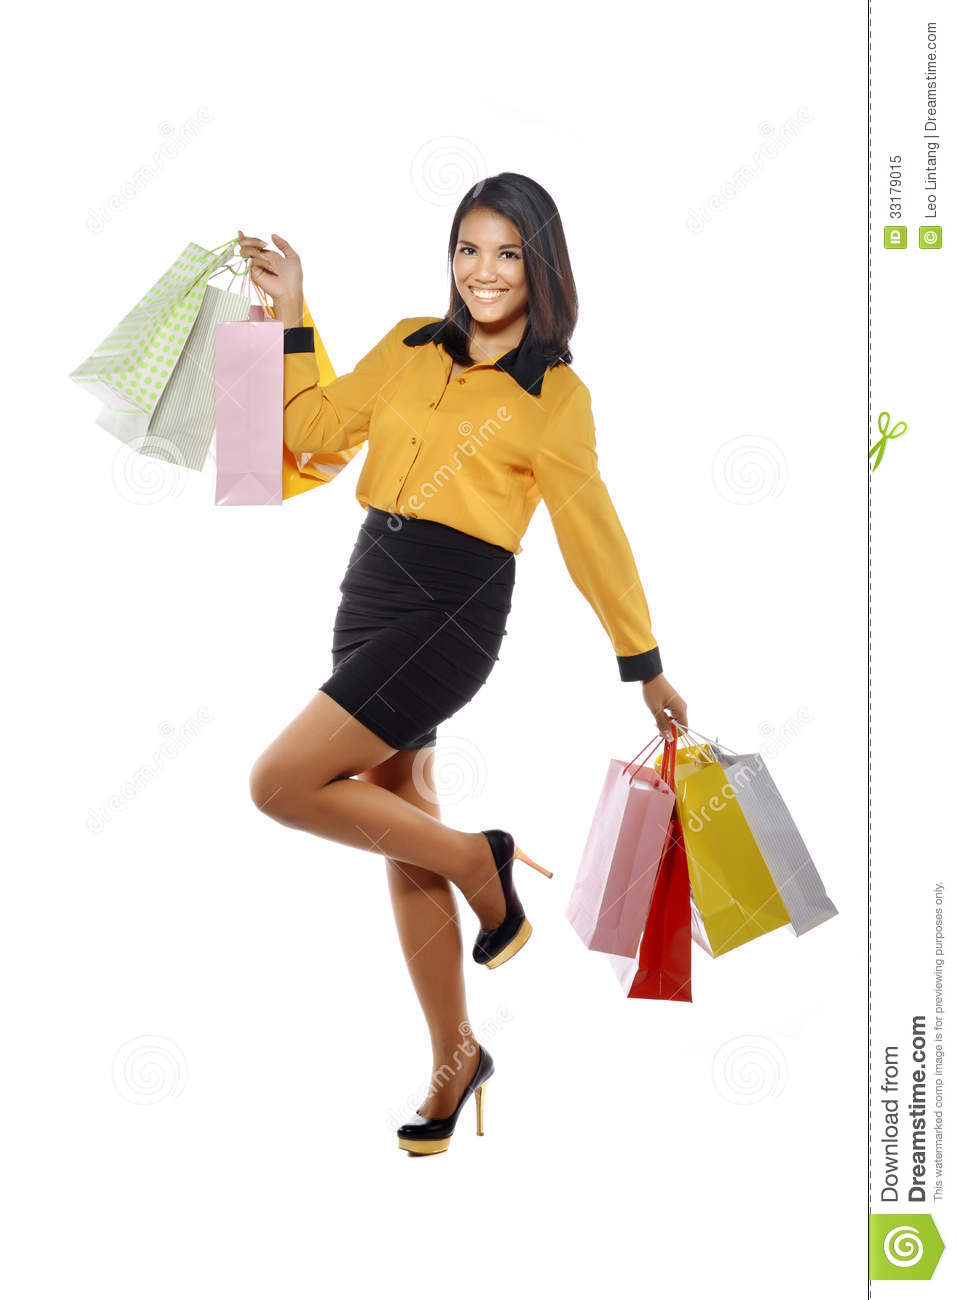 Woman posing with shopping bags isolated on white background full - Fullbody Portrait Woman With Shopping Bags Royalty Free Stock Photo